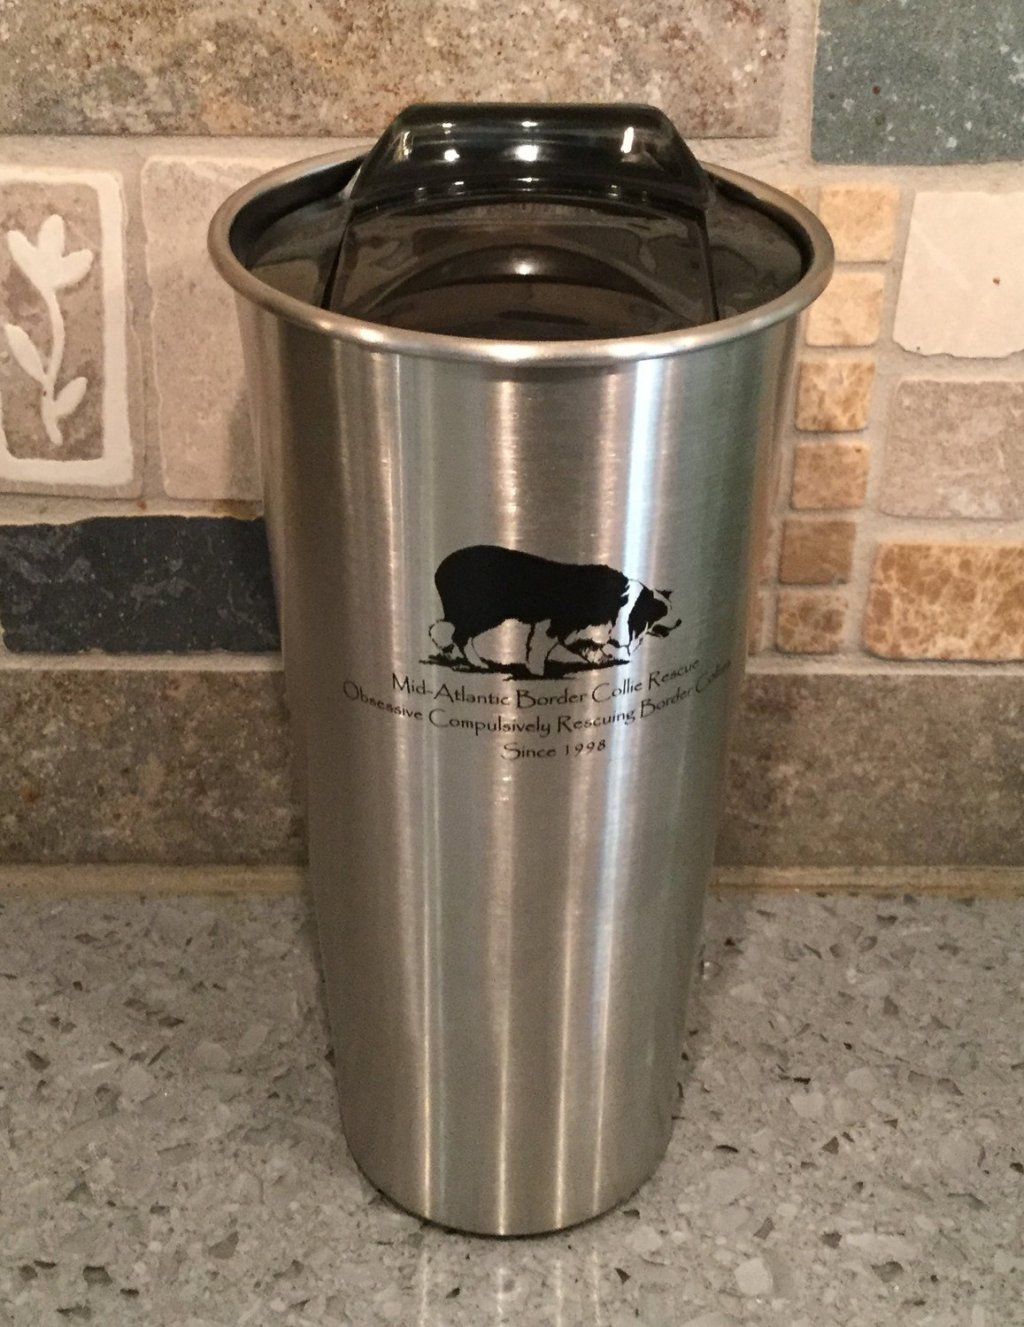 MABCR Stainless Steel Coffee Mug